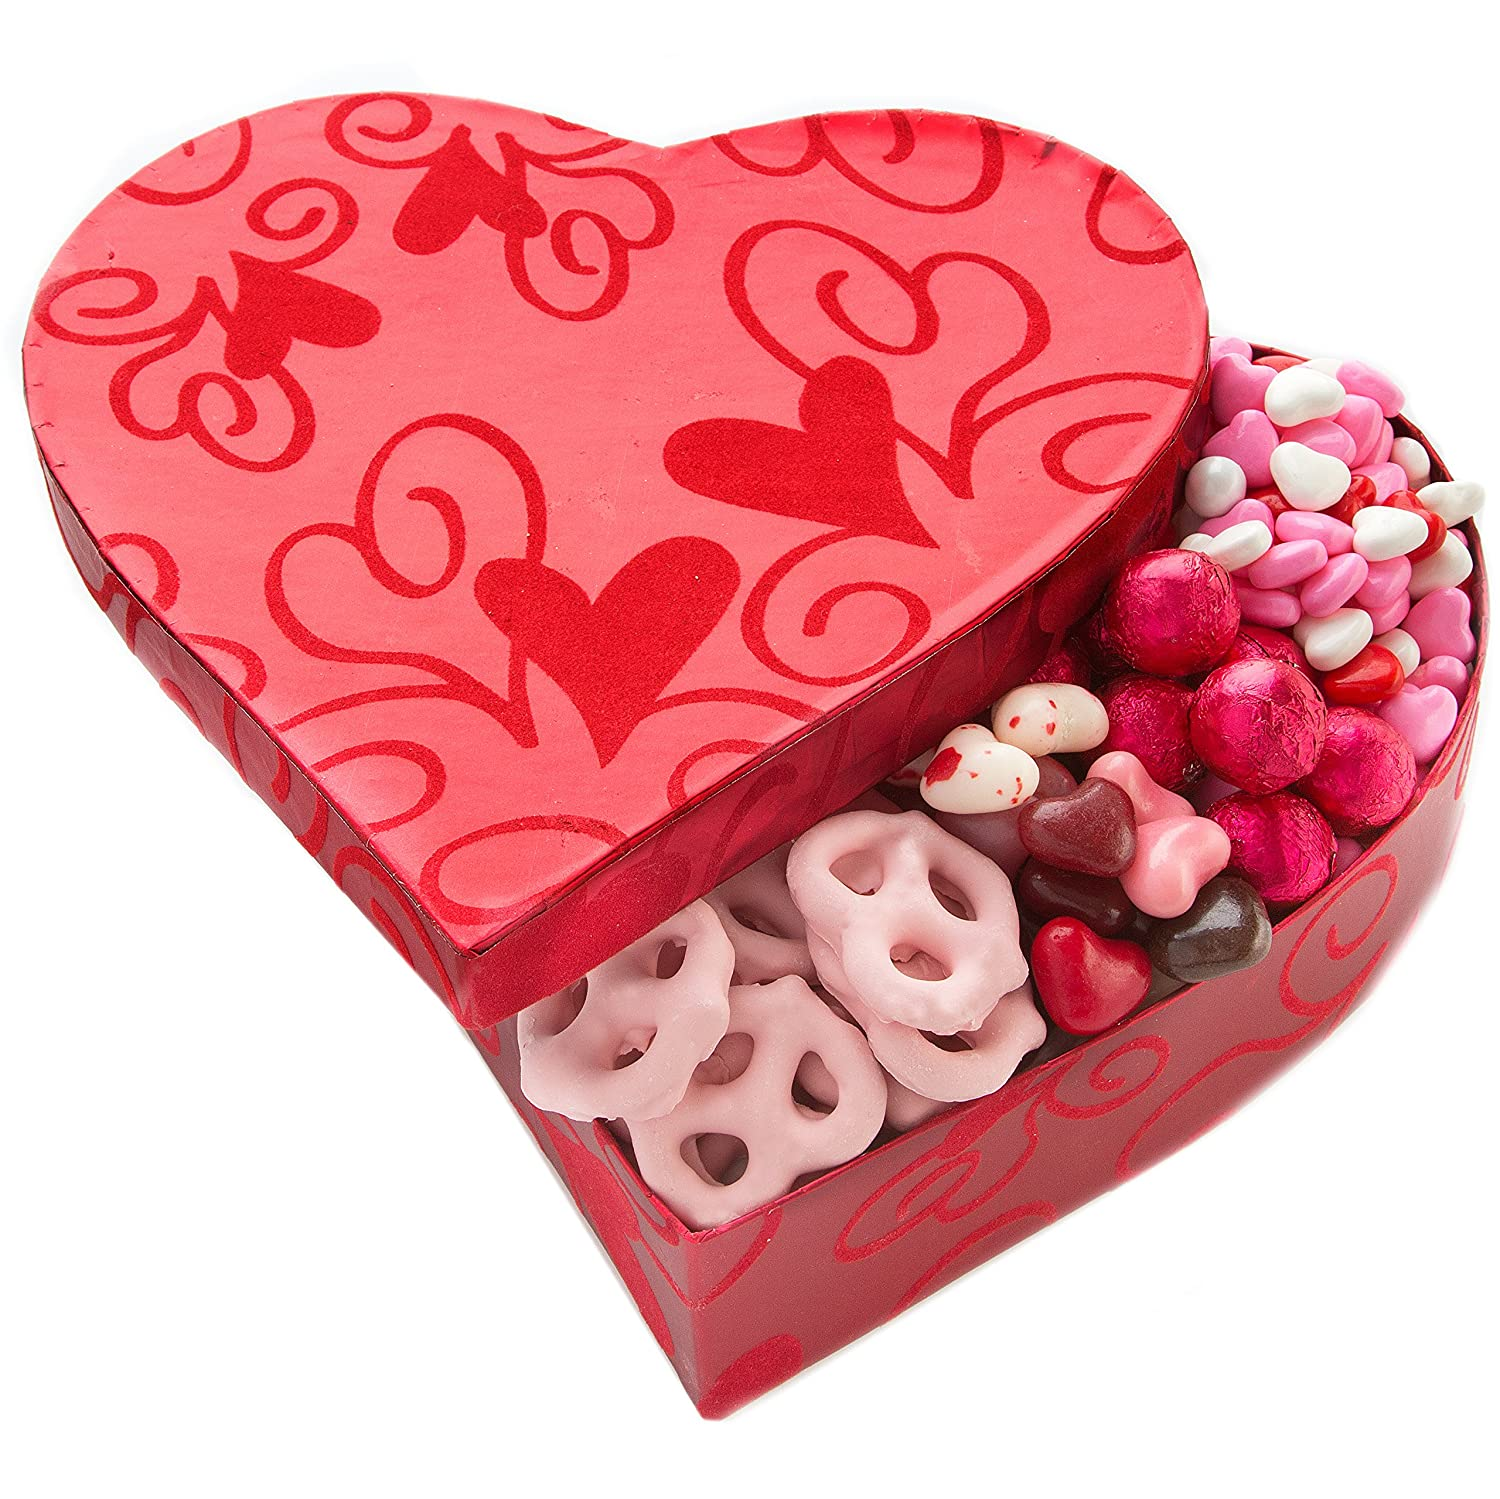 Amazon.com  Valentine Day Heart Shaped Box Valentines Day Gifts for Him or Her Filled with Valentine Day Candy - Oh! Nuts  Grocery u0026 Gourmet Food  sc 1 st  Amazon.com & Amazon.com : Valentine Day Heart Shaped Box Valentines Day Gifts ...